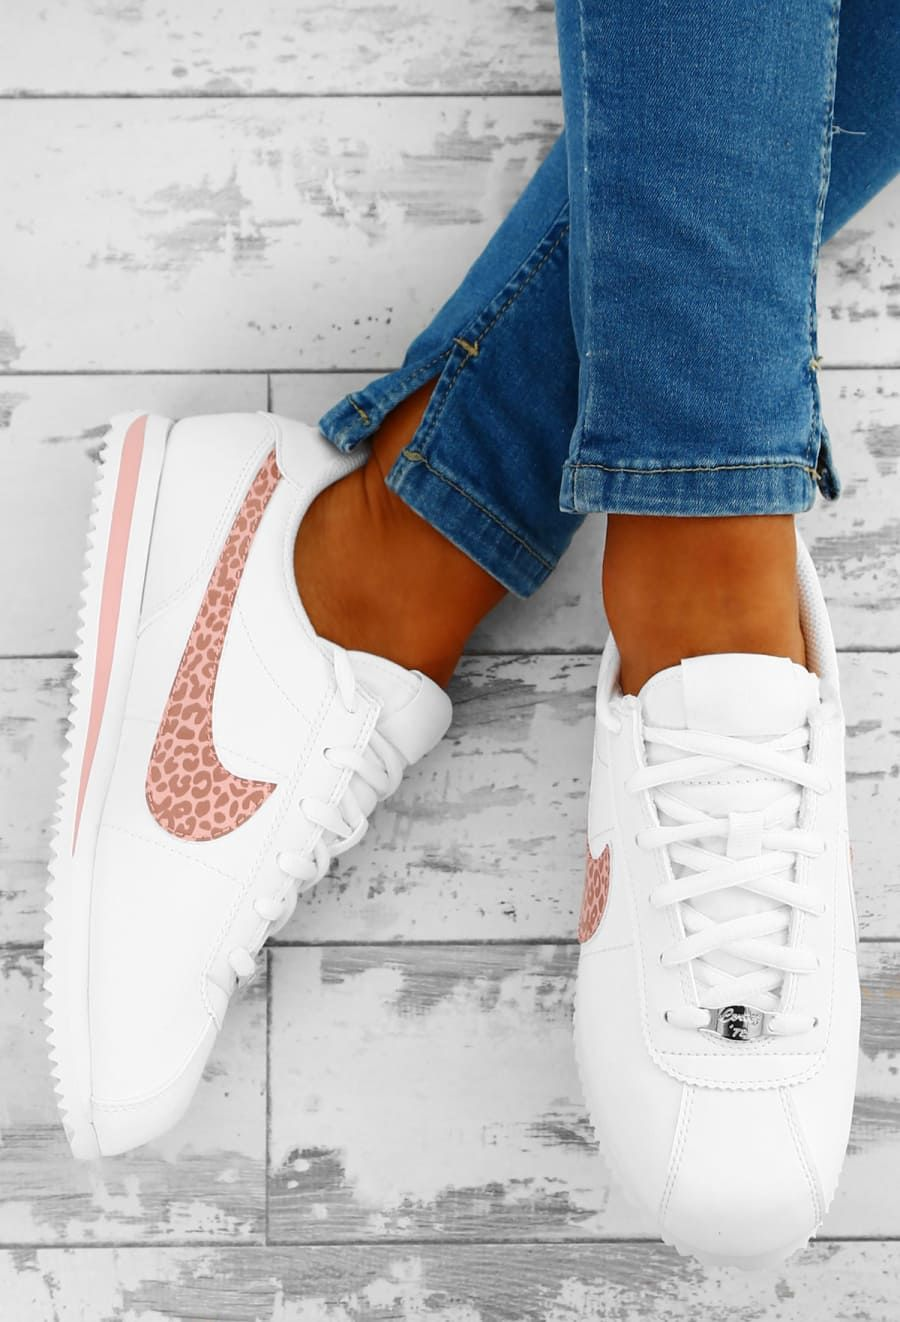 finest selection efad6 a33ad Nike Cortez White and Pink Leopard Trainers - UK 3 | Shoes | Nike ...